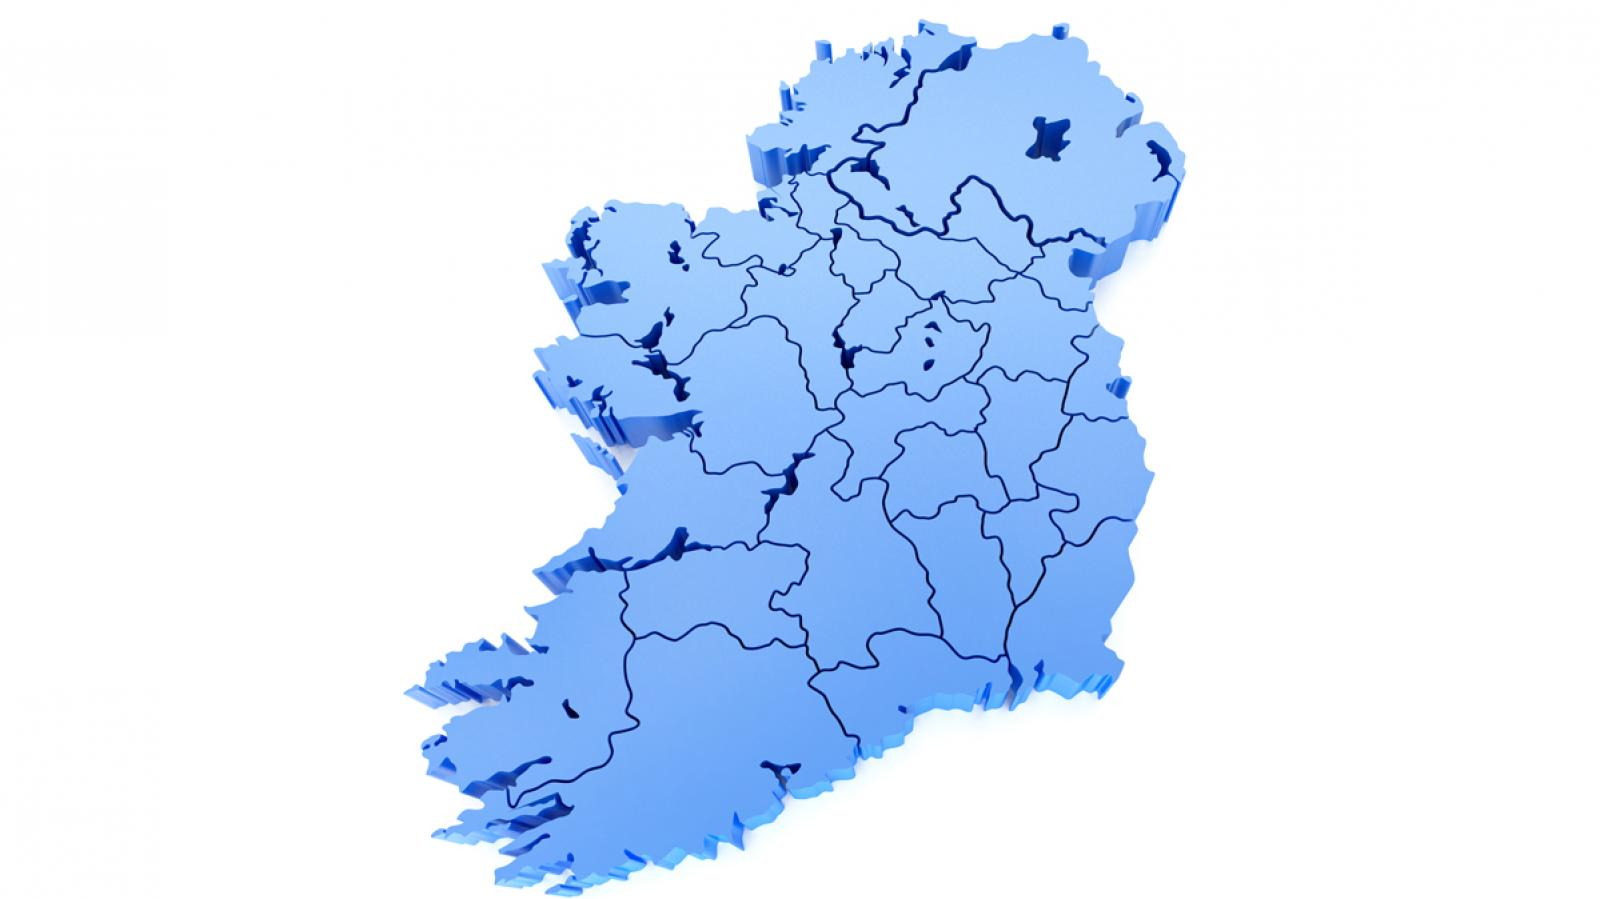 Map of Ireland - smaller